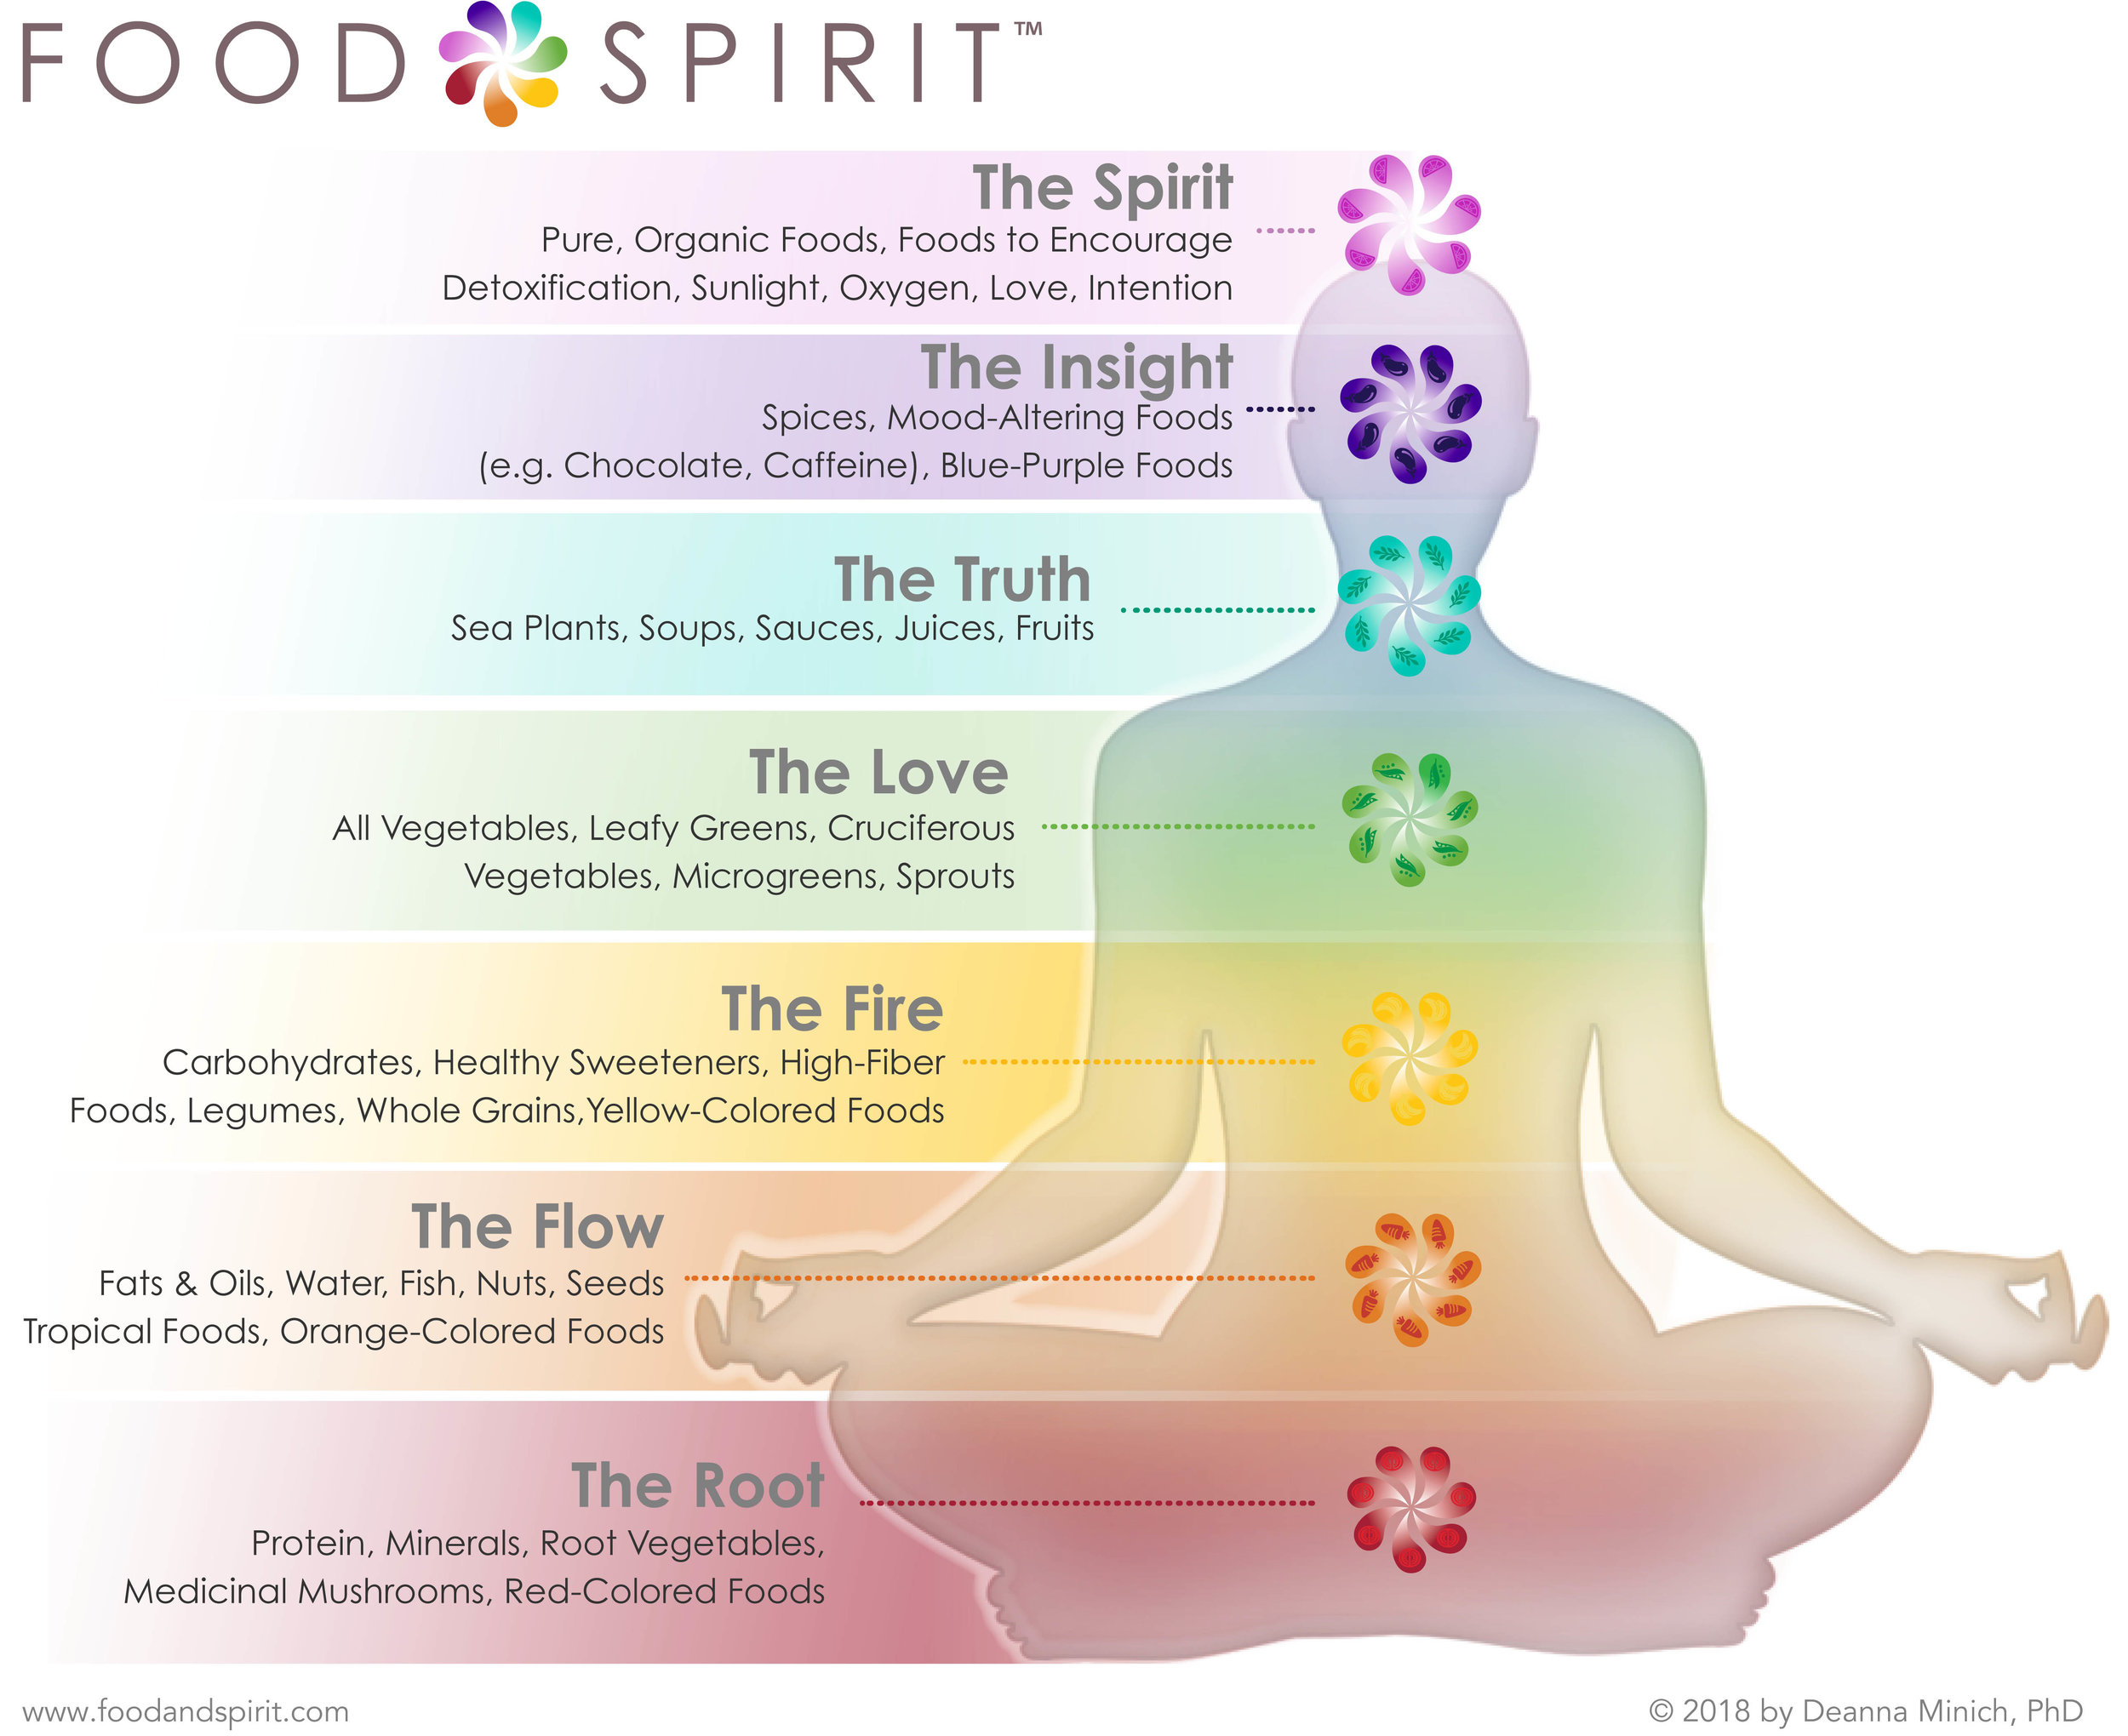 There are seven systems of health which help define our bodies and our lives.